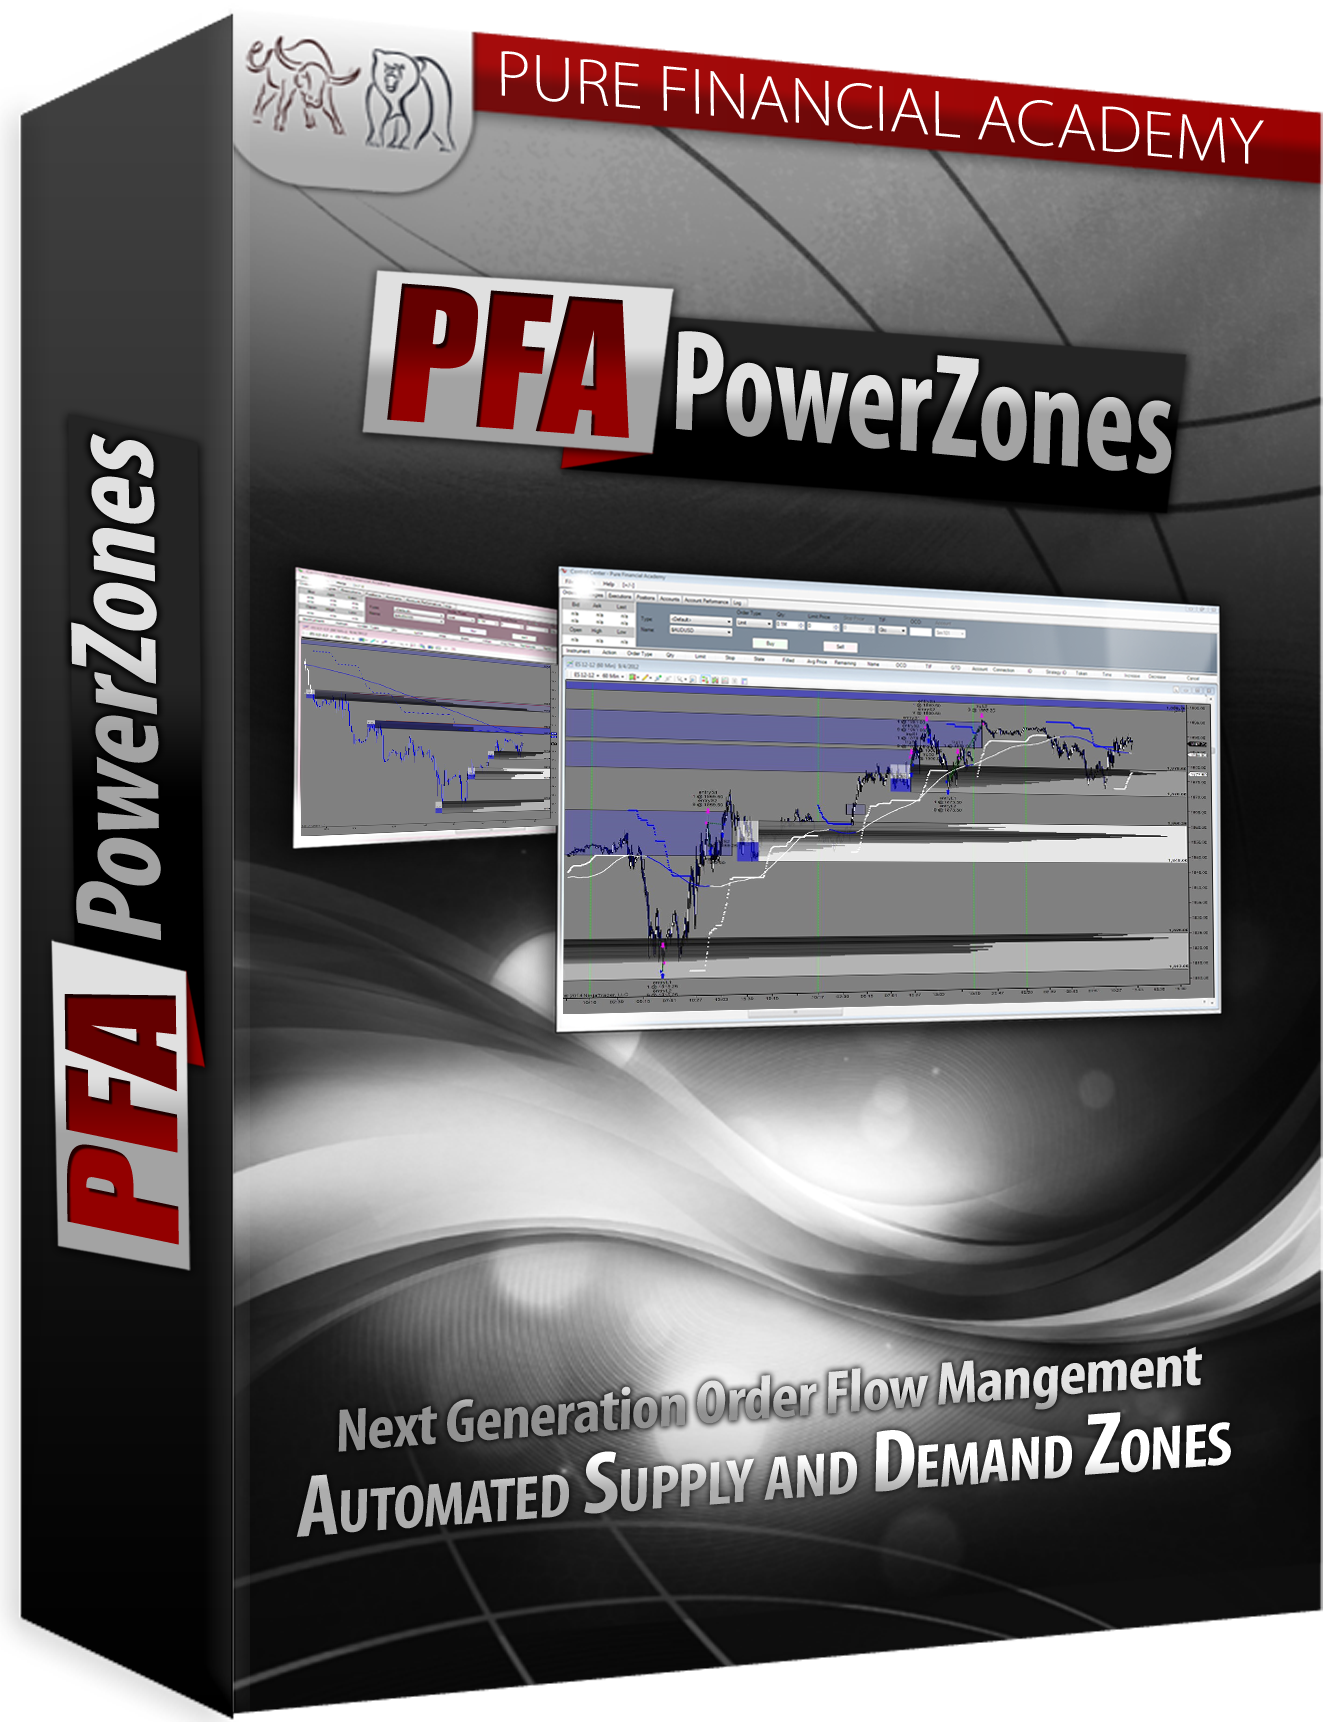 pfa power zones